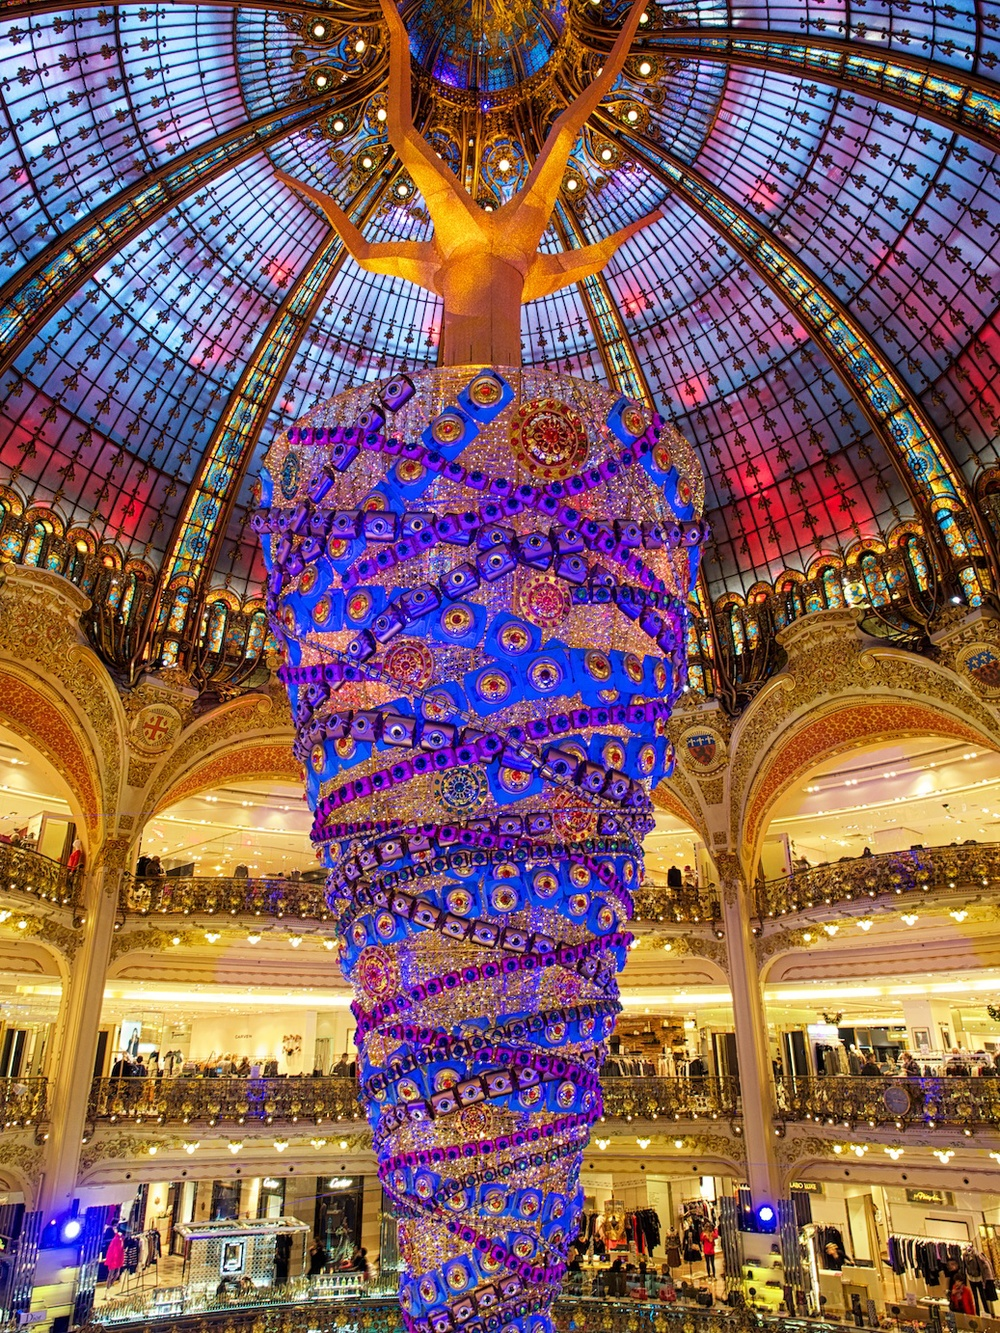 this is inside a department store known as gallerie lafayette.  basically, it's a big upside-down bejeweled christmas tree.  you don't see that everyday!